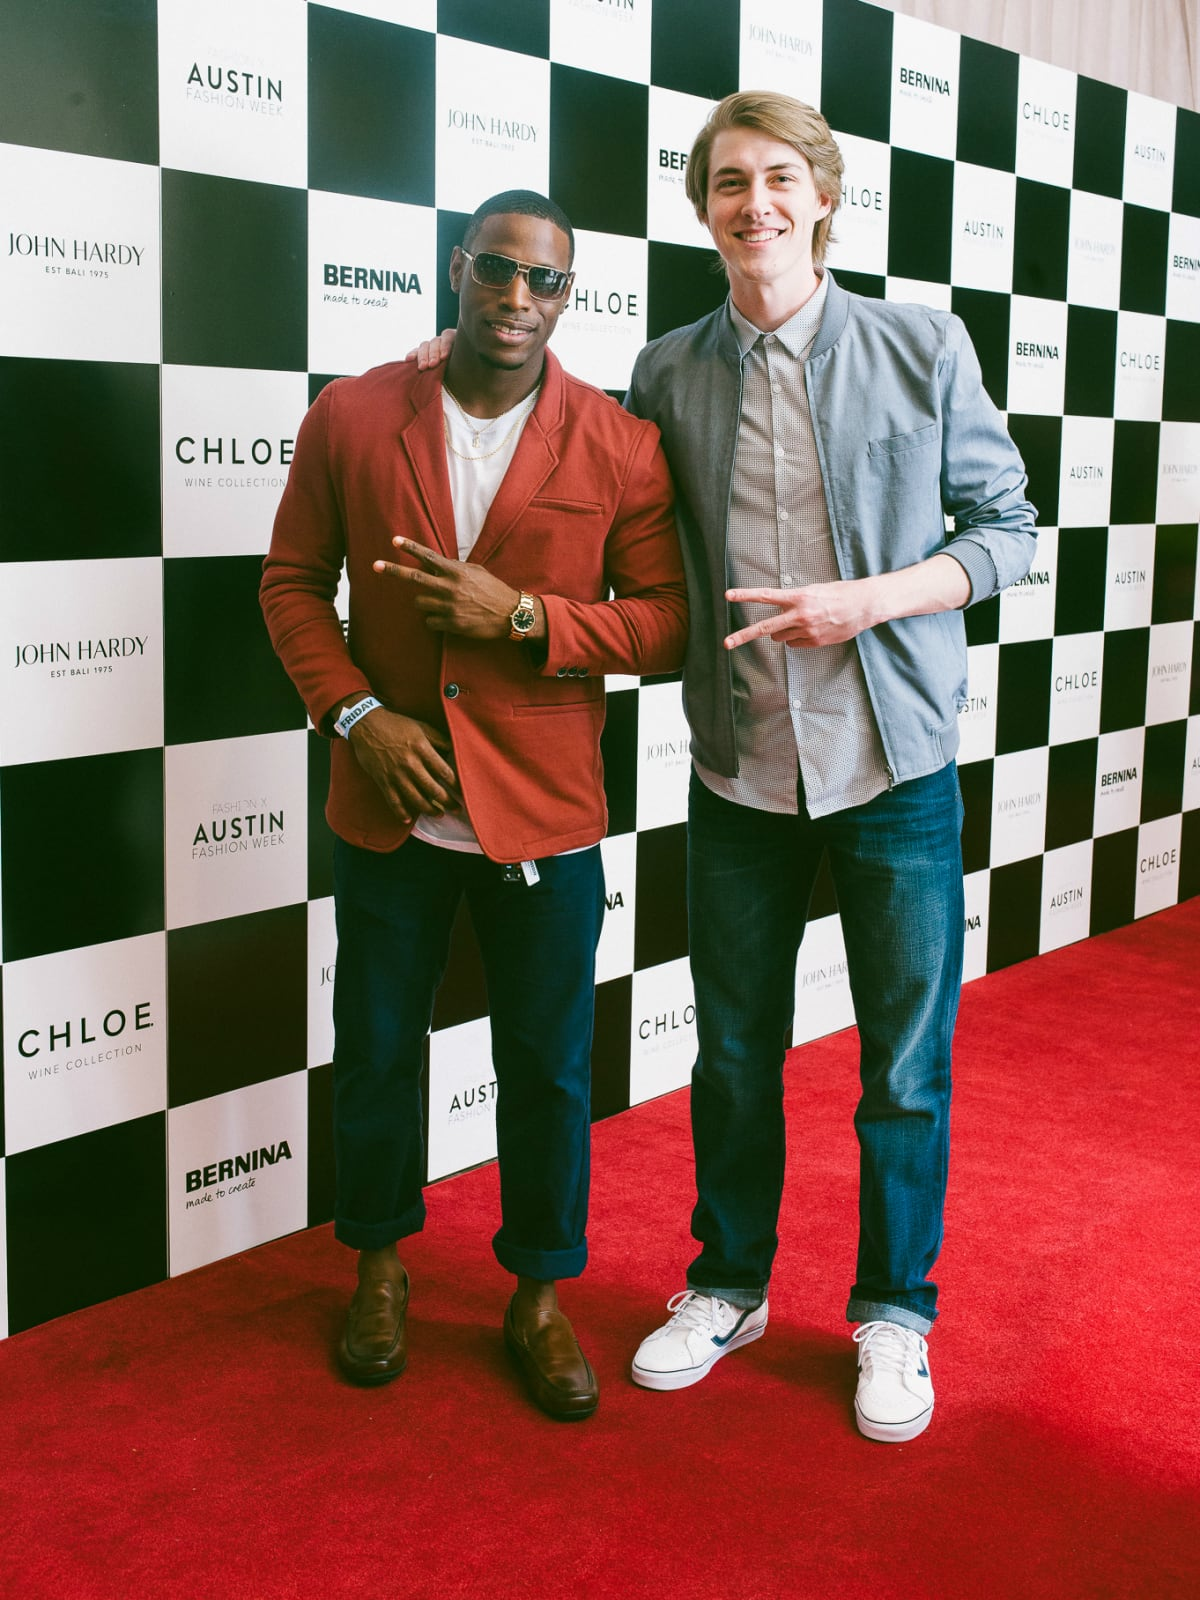 Austin Fashion Week 2016 red carpet Andre Williams Mike Seitz